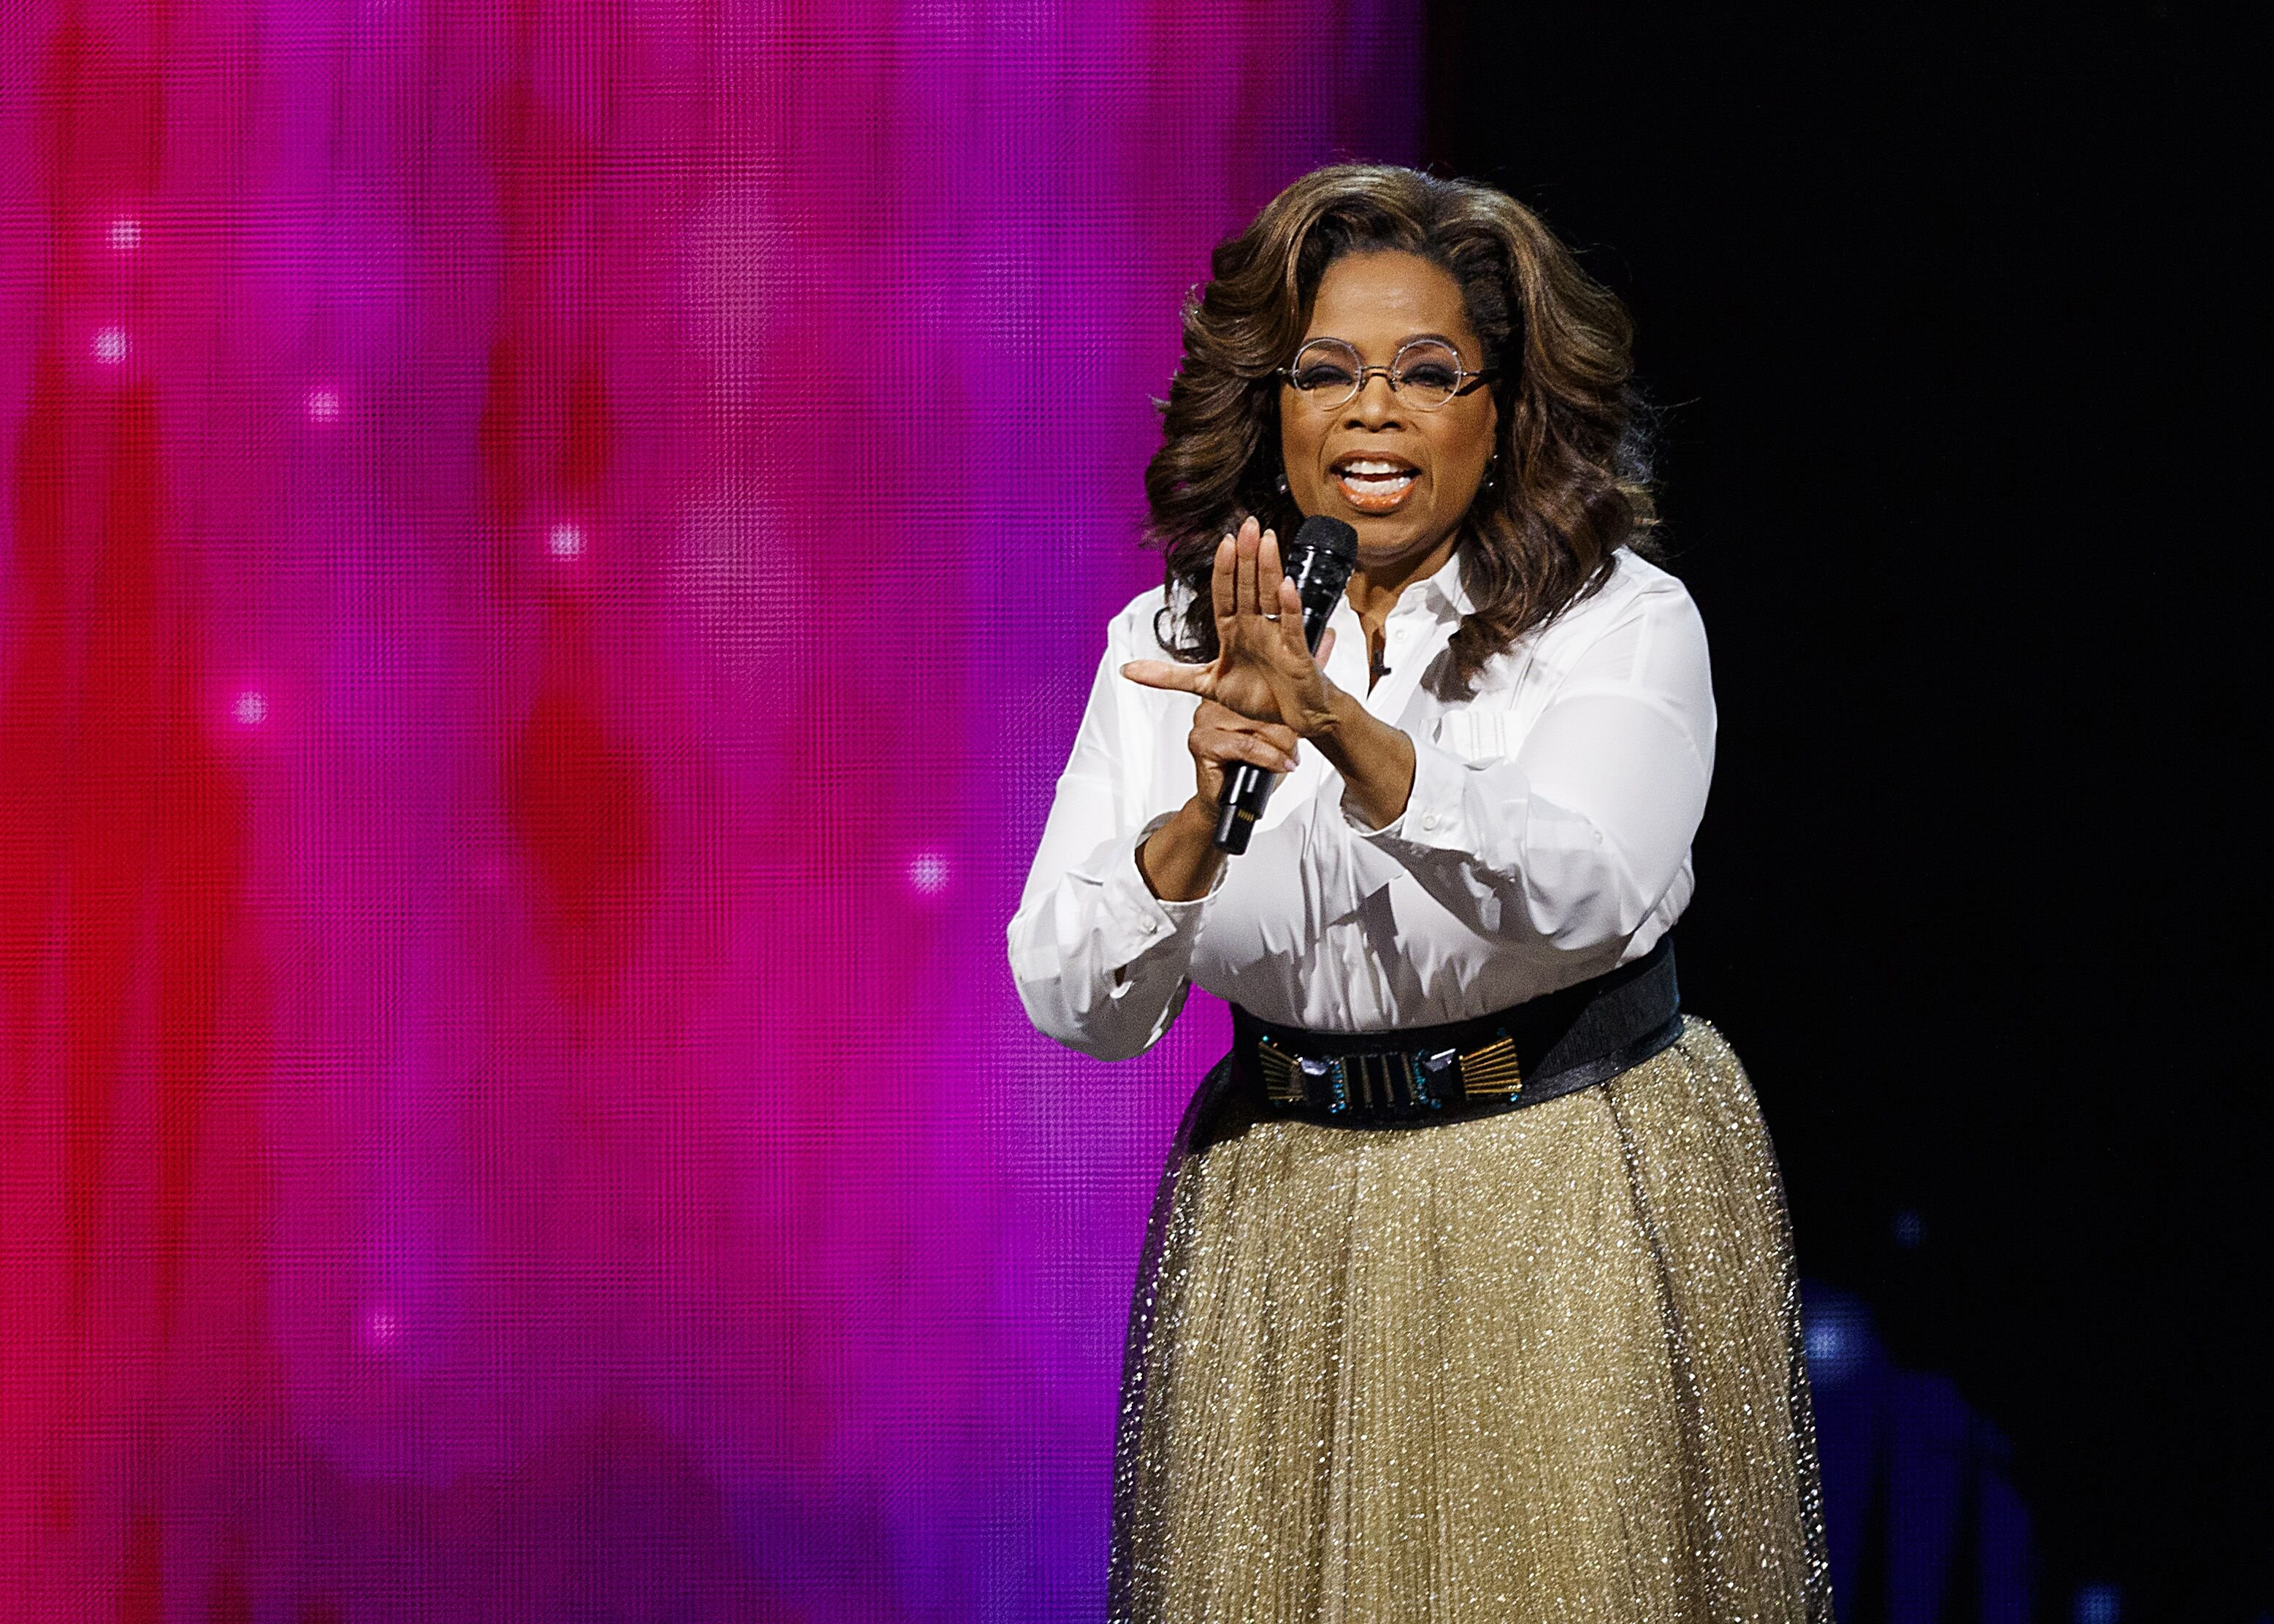 Oprah Winfrey speaks on stage at Rogers Arena on June 24, 2019 | Photo: Getty Images